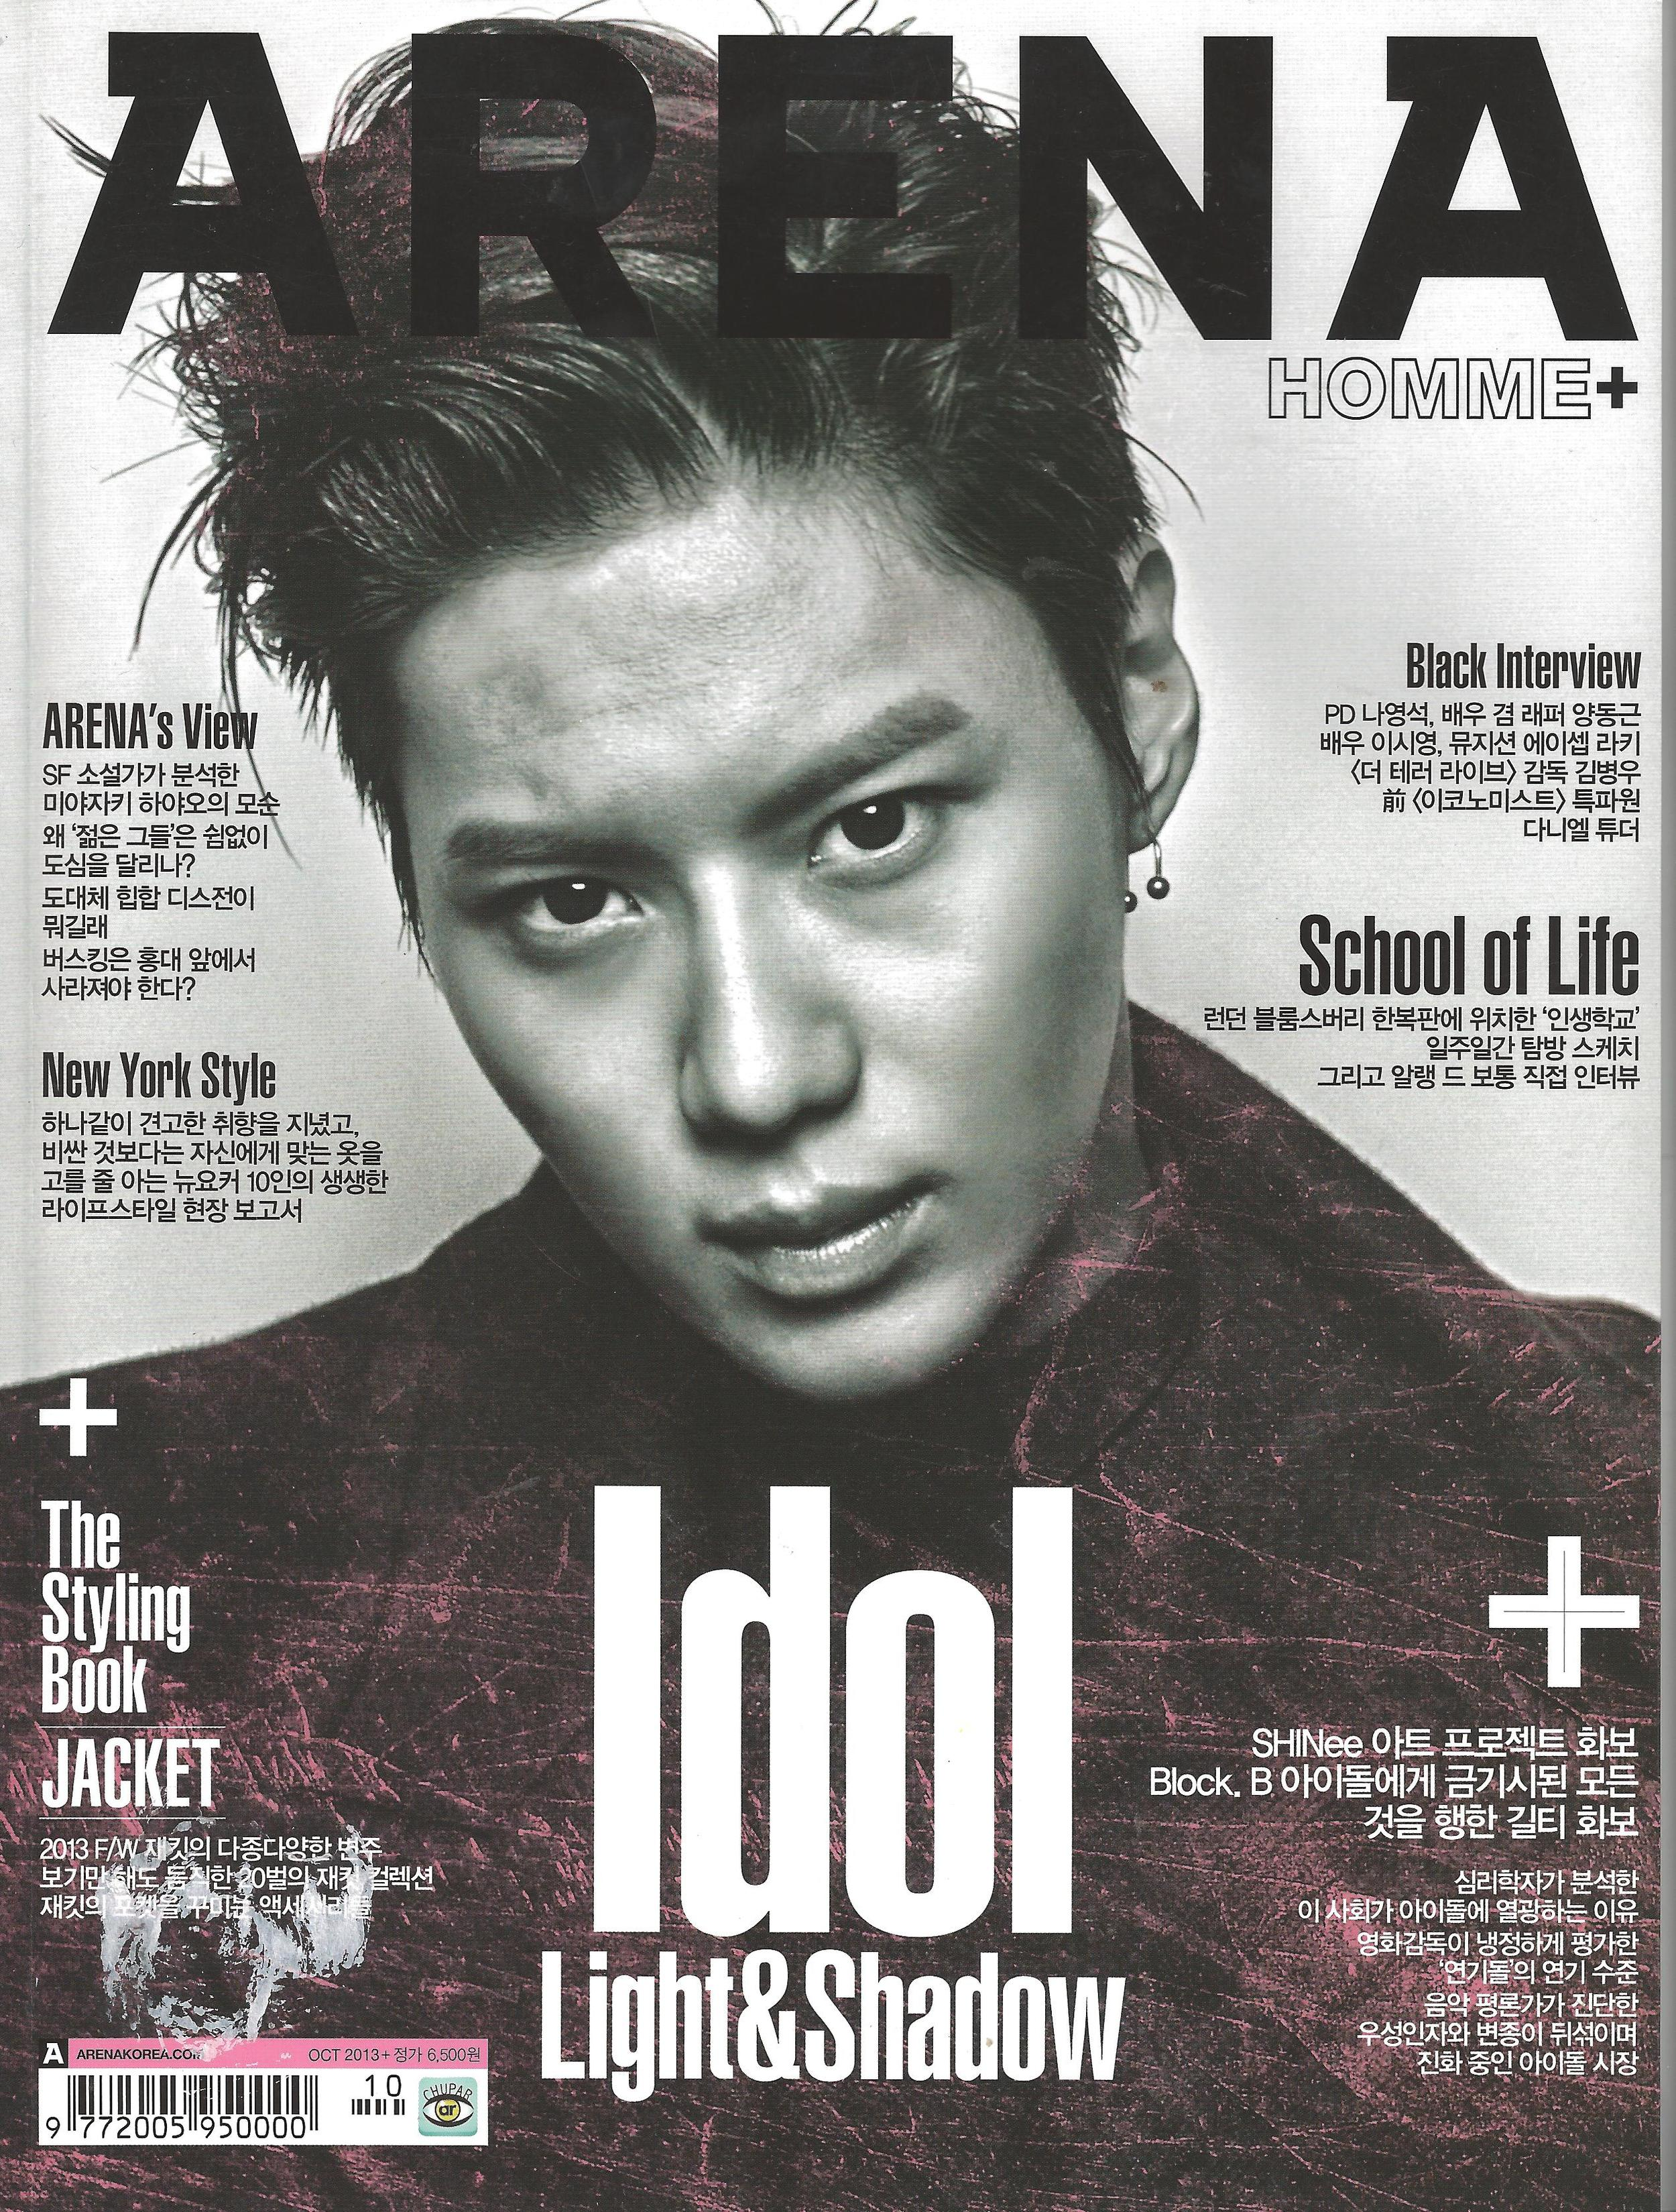 2013-10 Arena cover.jpg